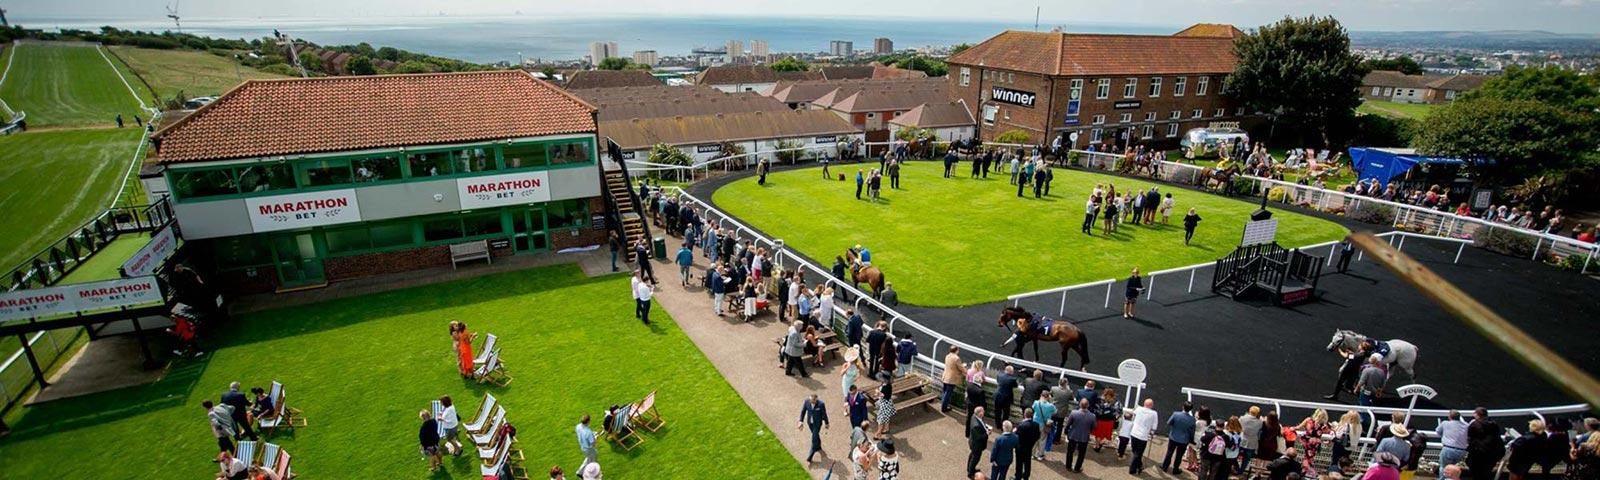 View of the parade ring from above